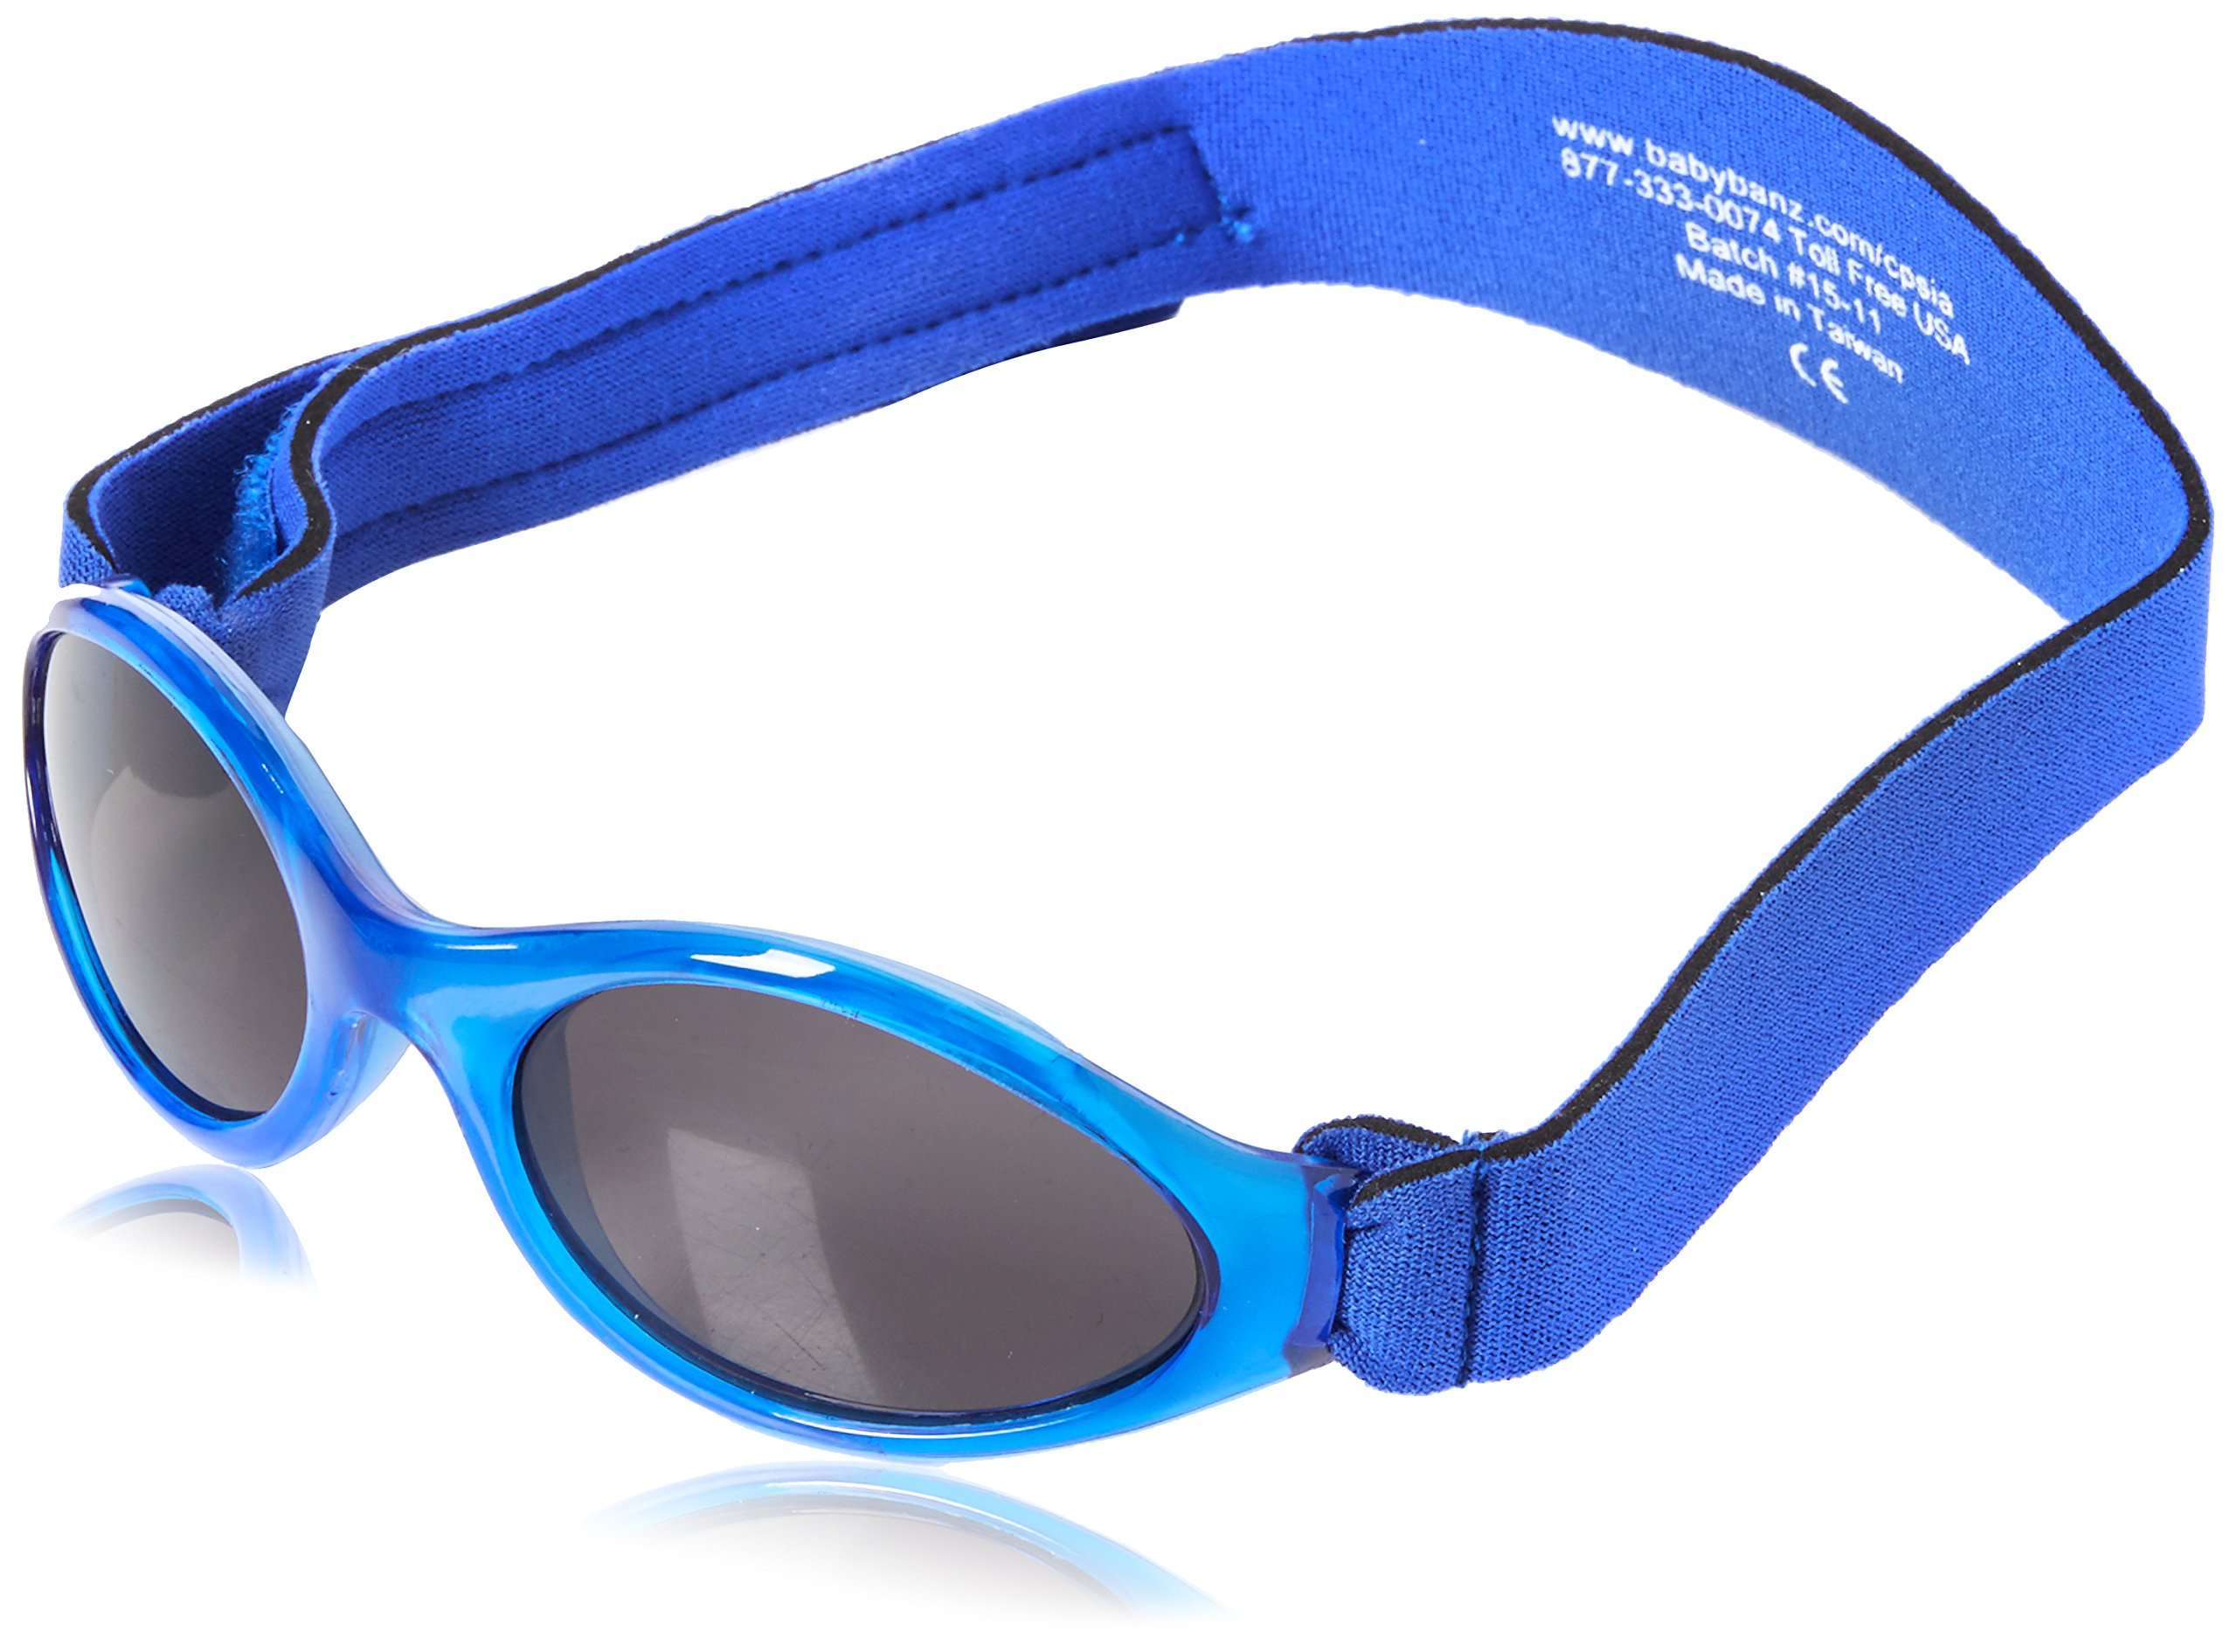 Baby Banz Sunglasses Infant Protection